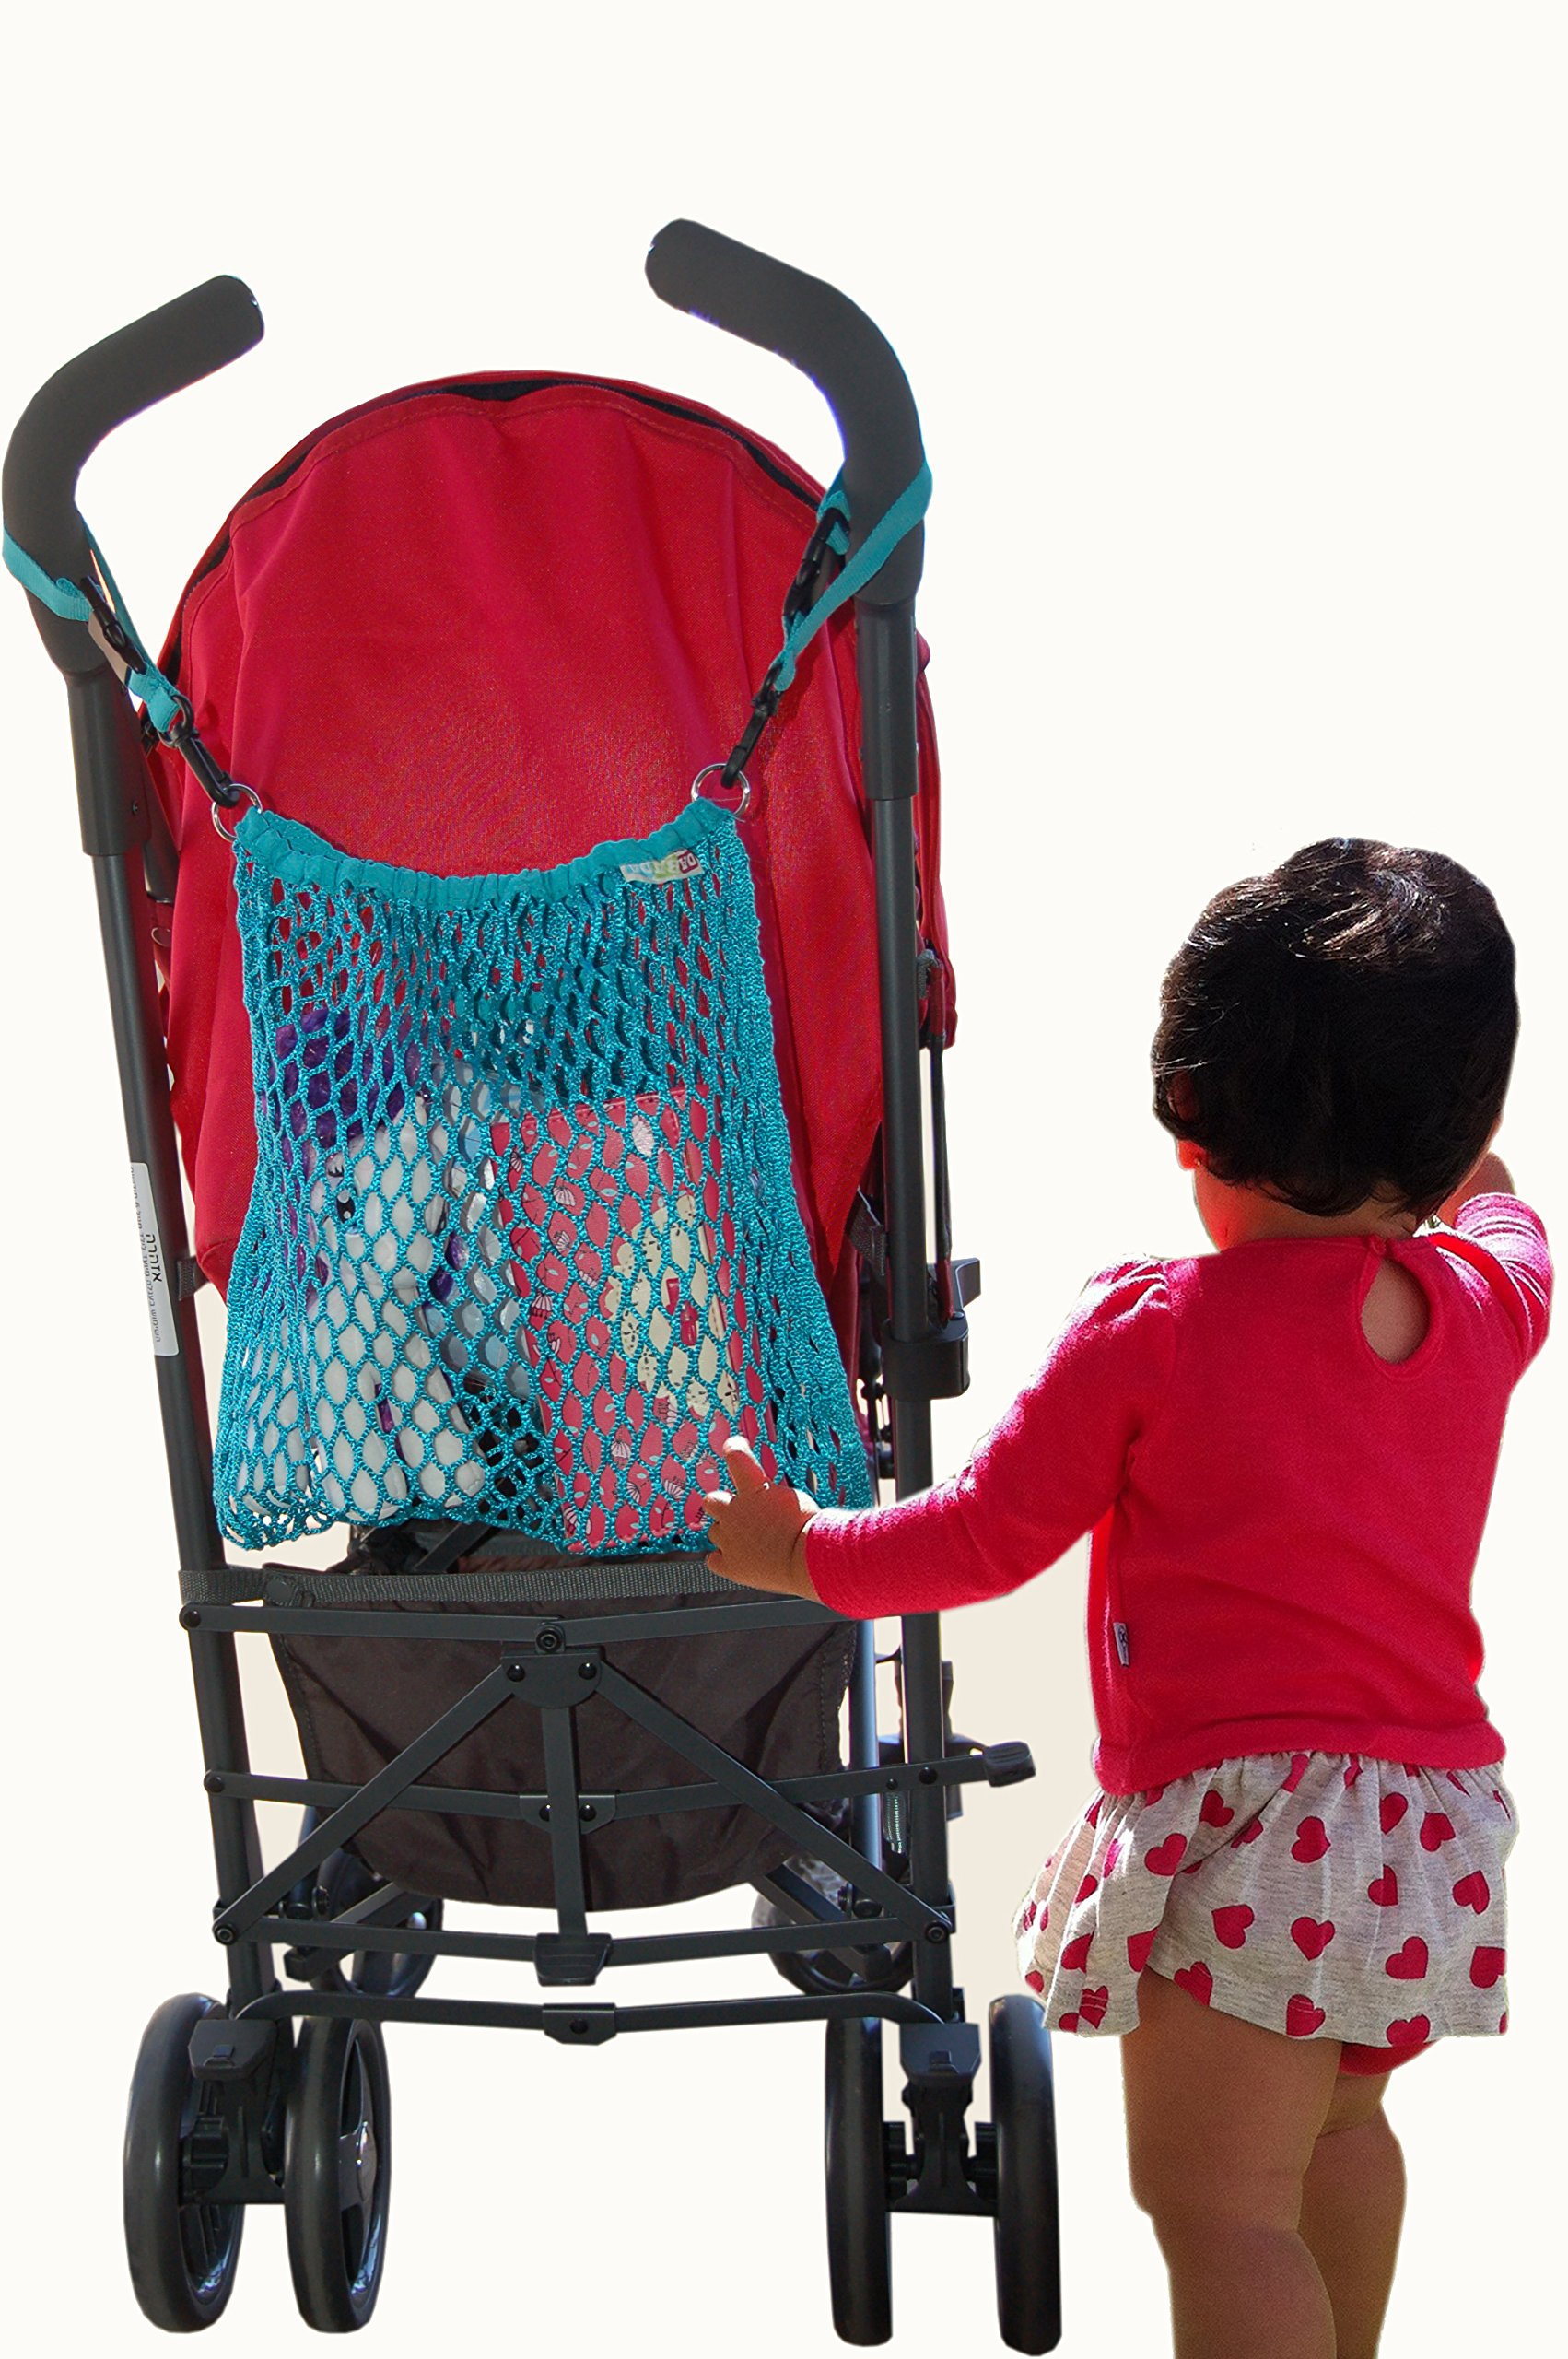 Stroller mesh bag, net storage bag, lightweight Baby Bag Organizer. great way to carry all your on-the-go baby essentials. Easily attaches to the back of any stroller by DABADA (Image #1)